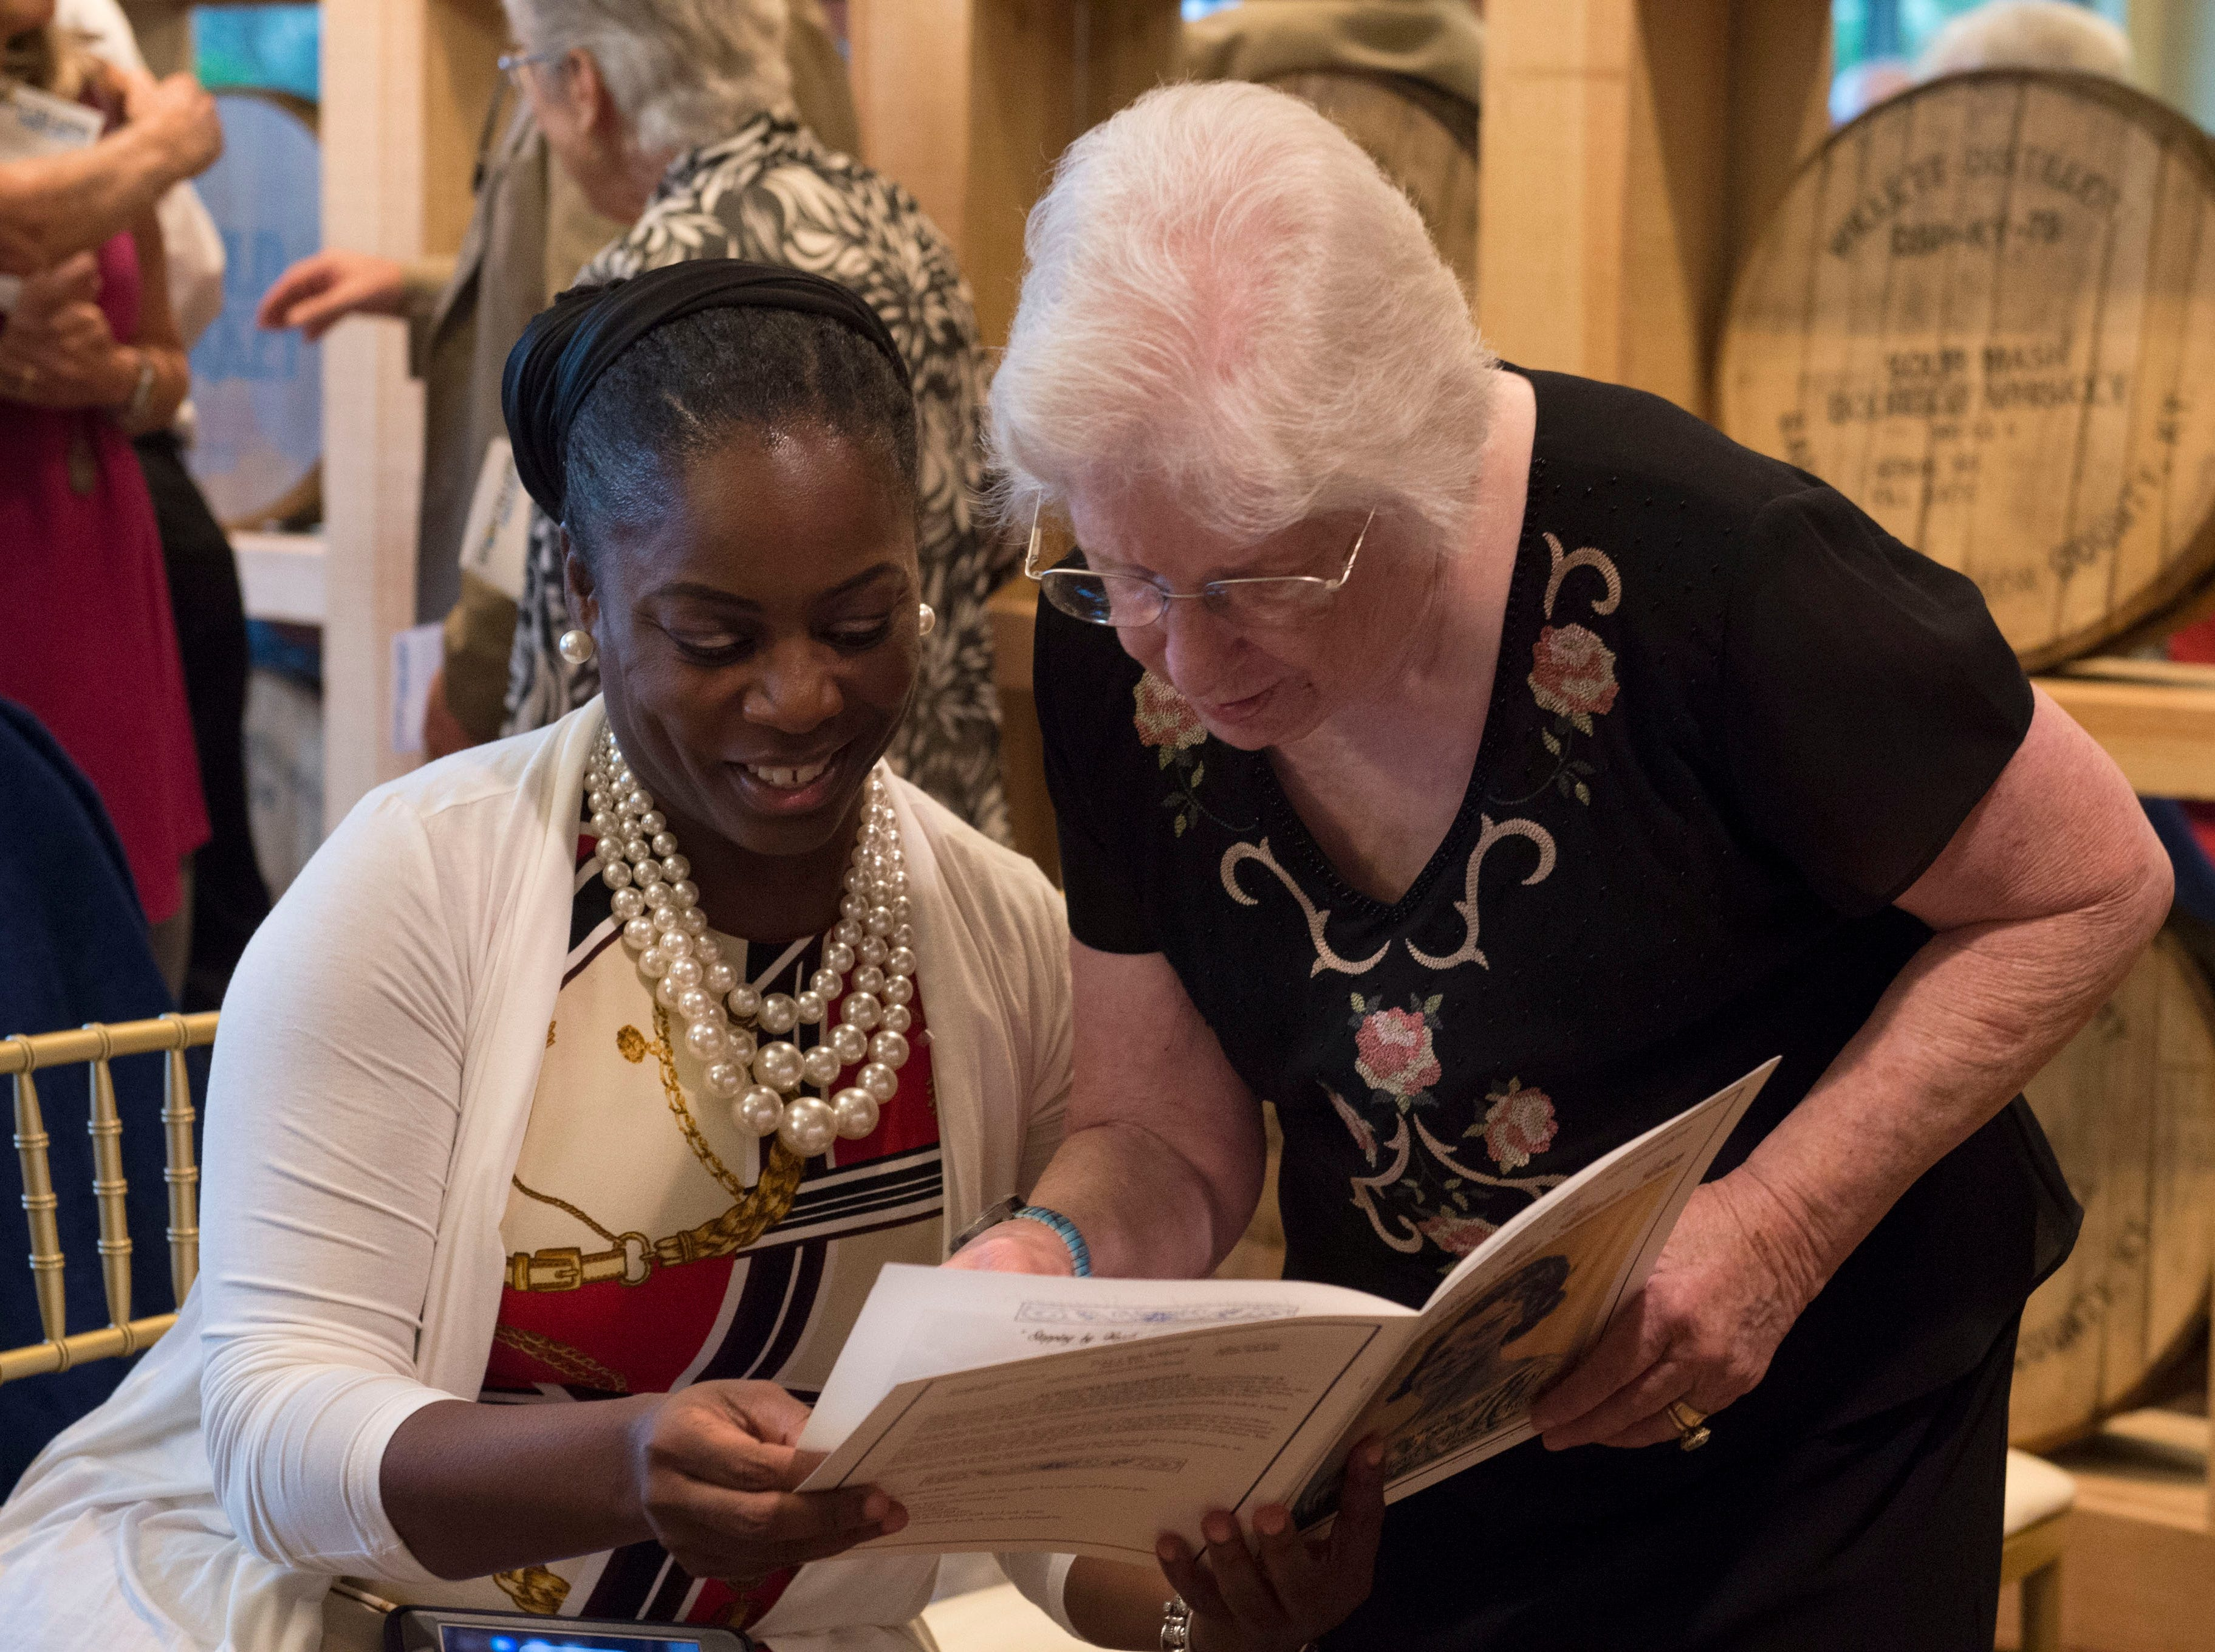 Mississippi Storytellers Tonja Murphy (left) and Nash Noble (right) visit before they share their stroes about 'growing up' at Rickhouse in Jackson. Tuesday, Sept. 18, 2018.